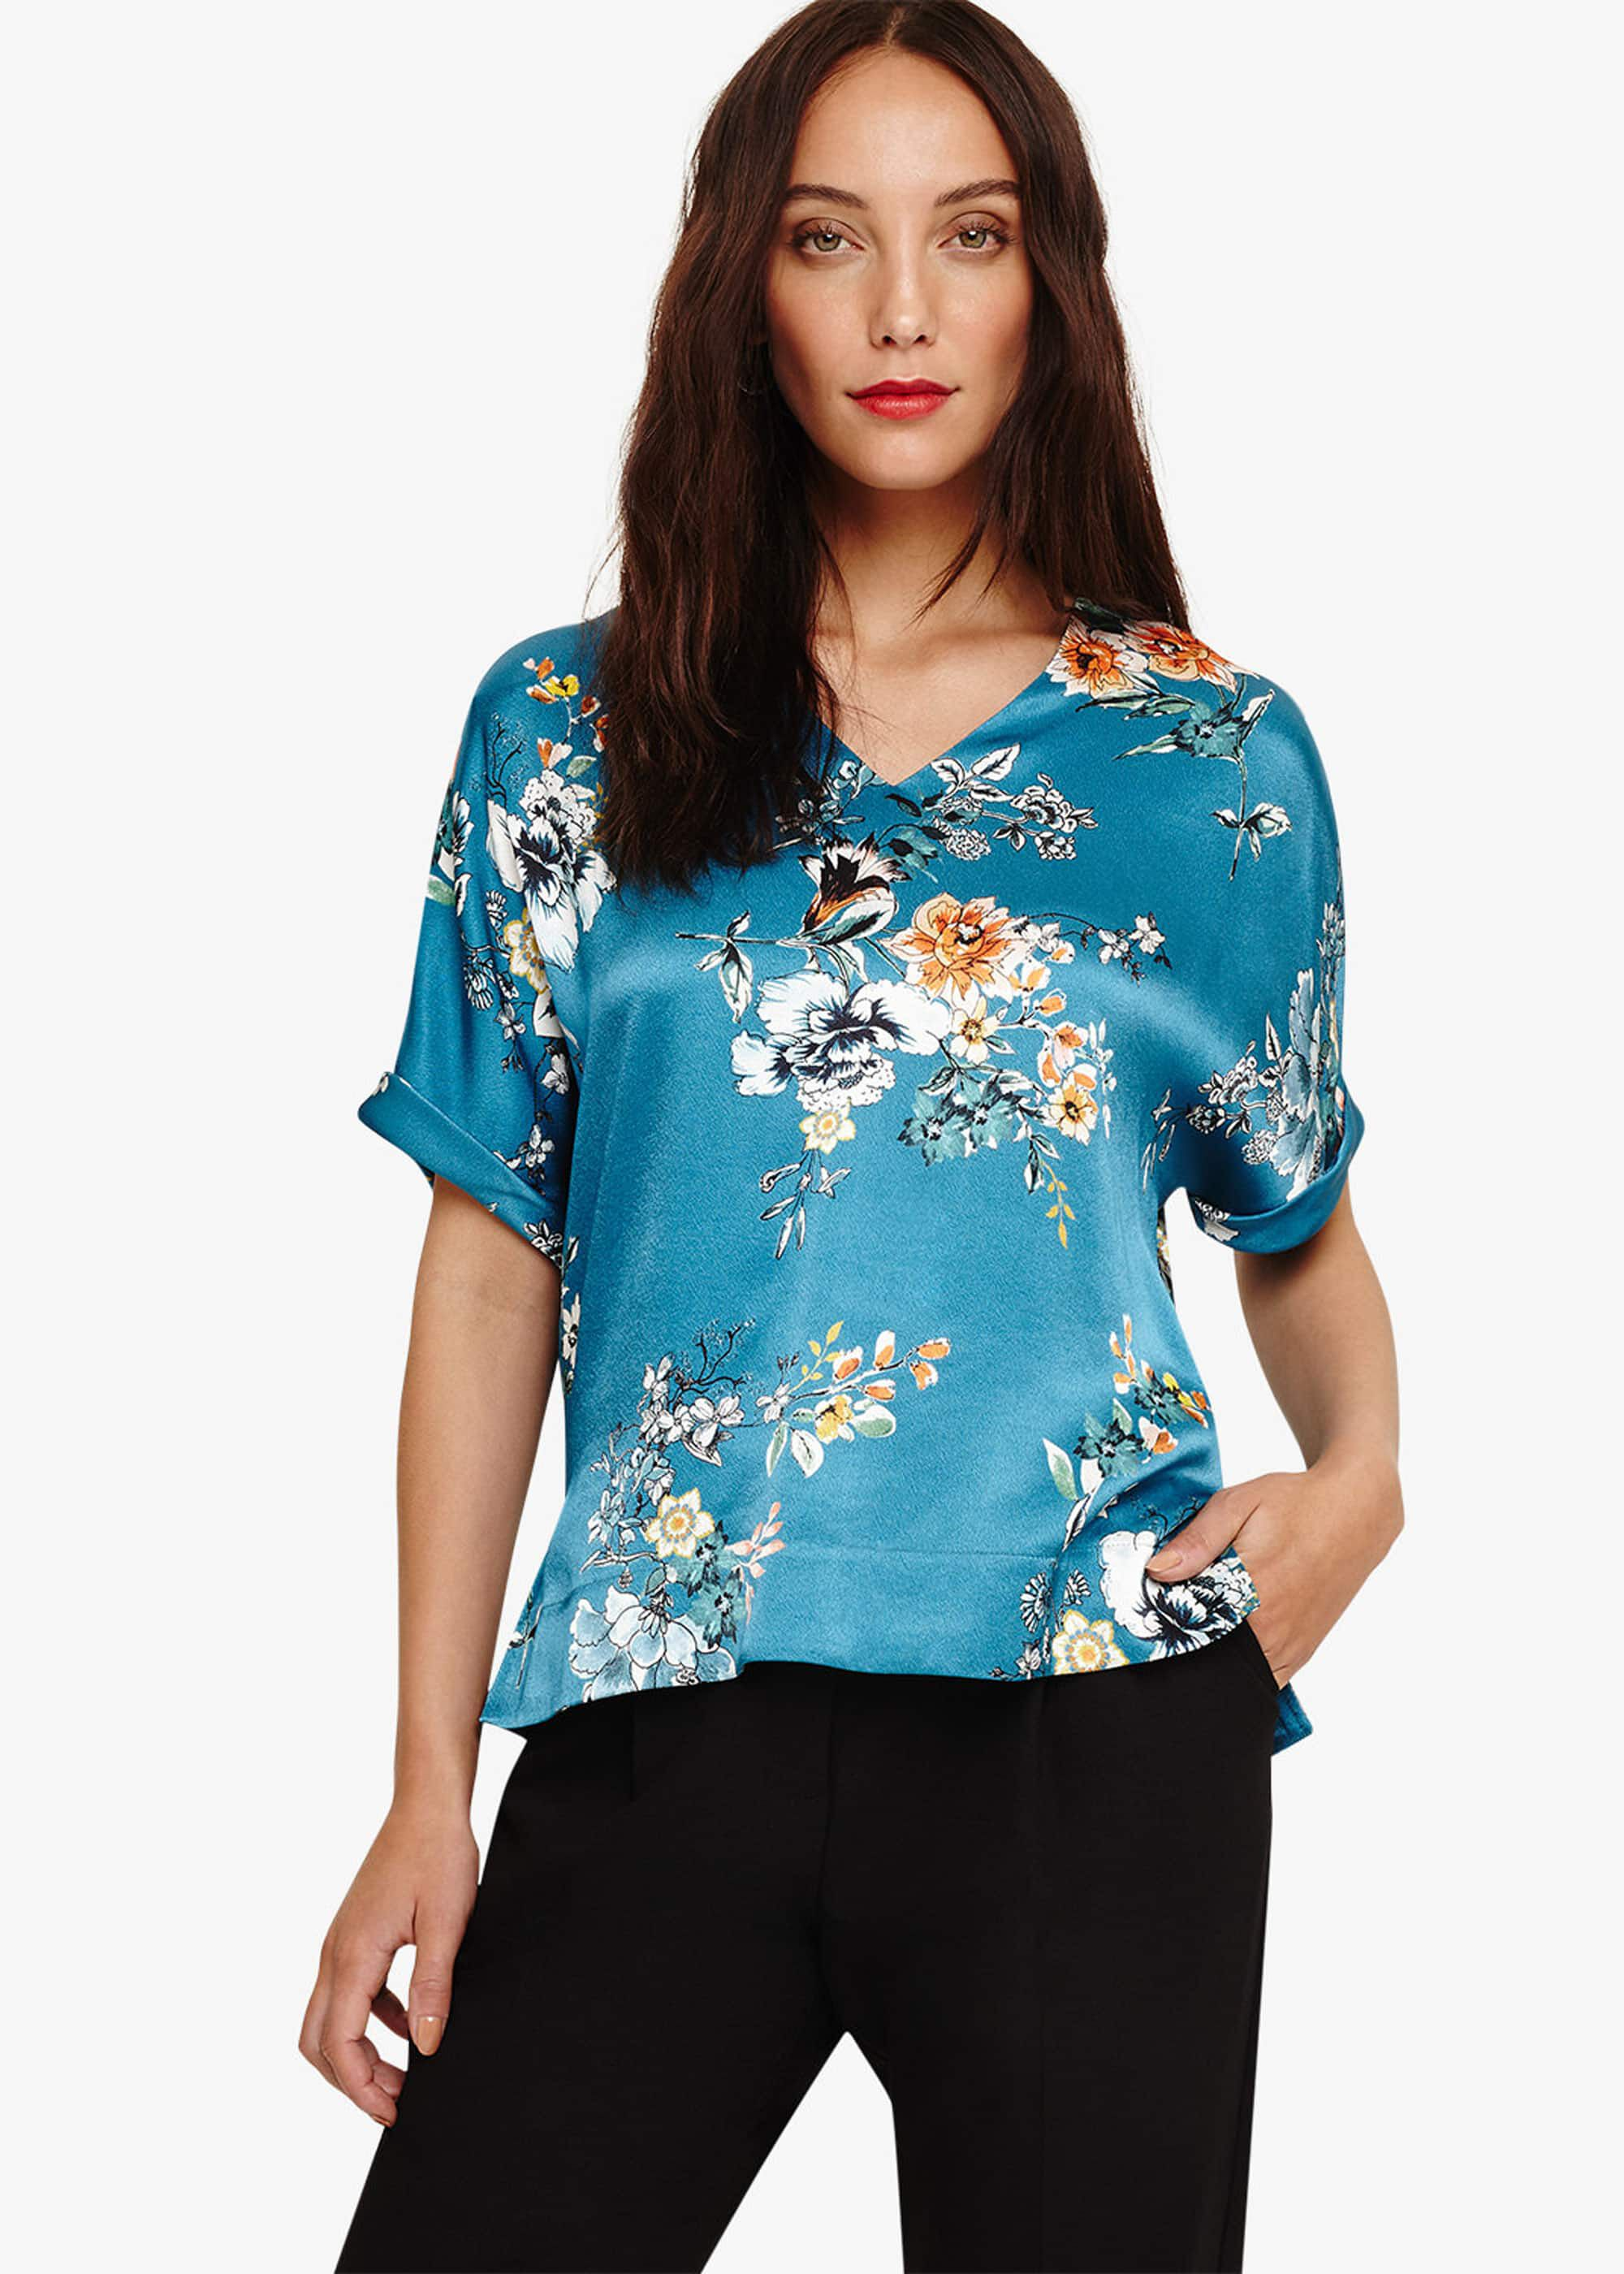 Blue Floral Sleeveless Tunic Shirt